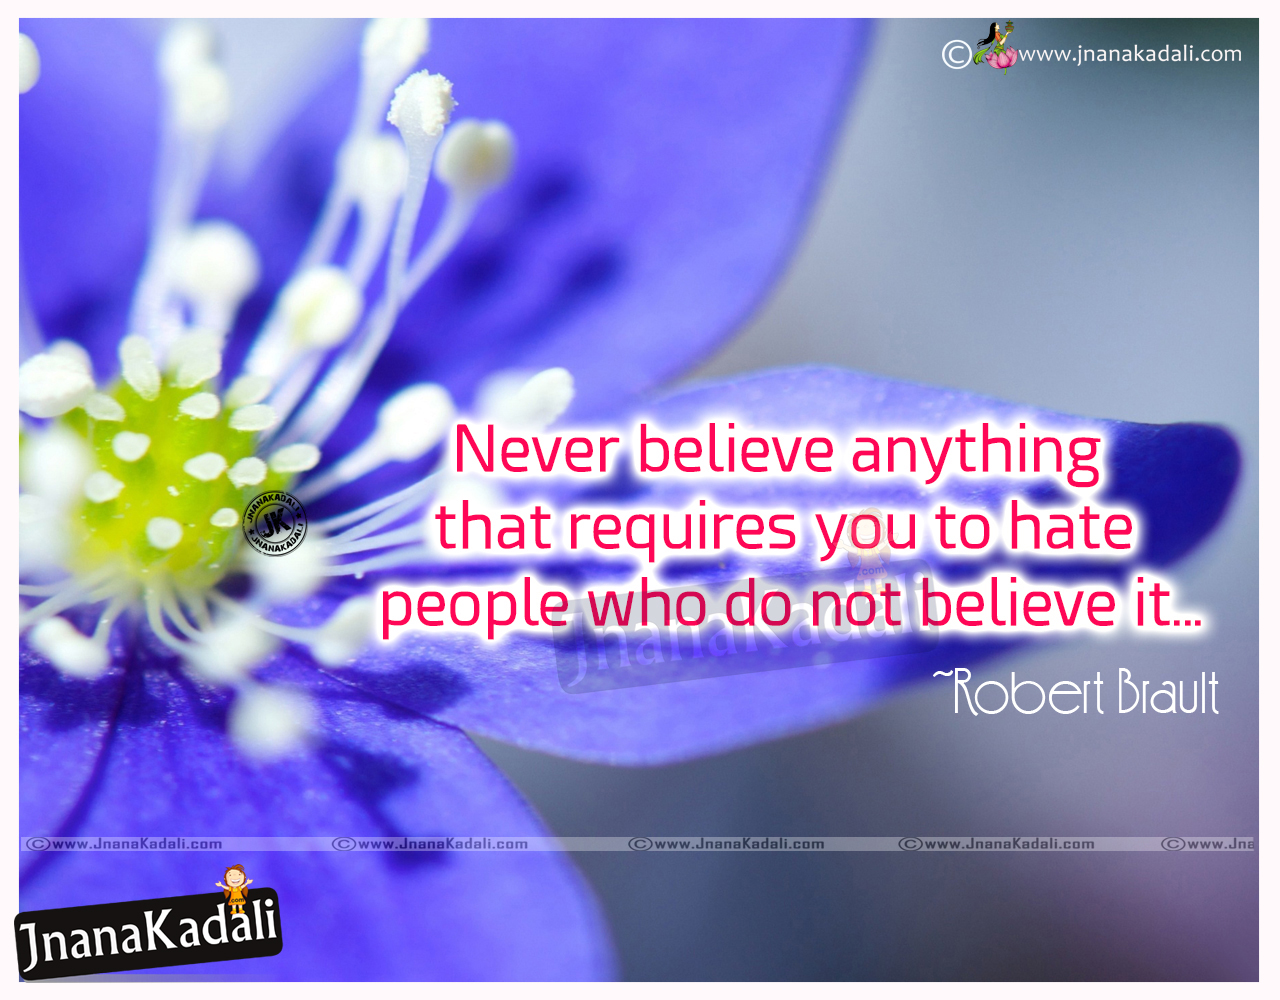 Telugu Best Motivated Lines And Good Daily Love Believe - Full Hd - HD Wallpaper